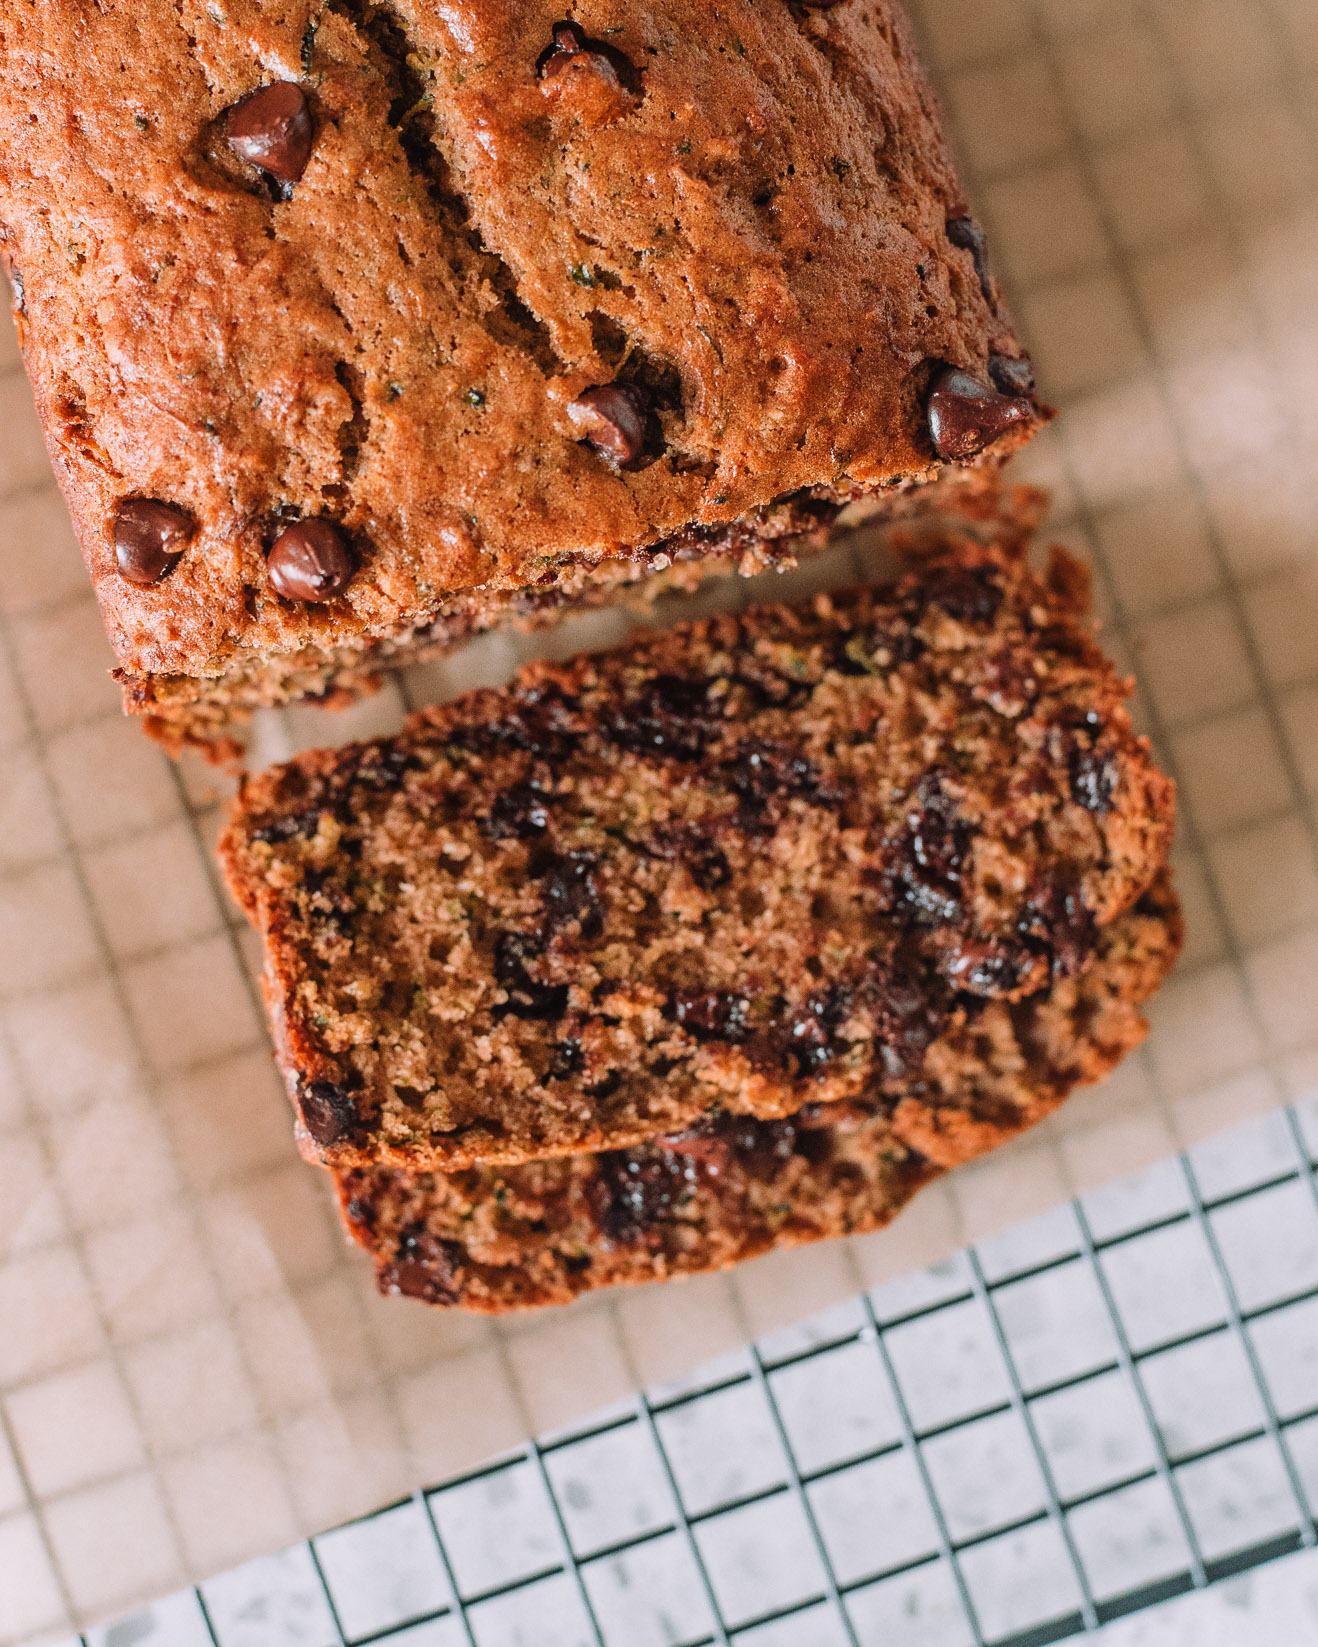 Chocolate Chip Zucchini Bread by Mash and Spread- Jasmin Foster, RD, LD